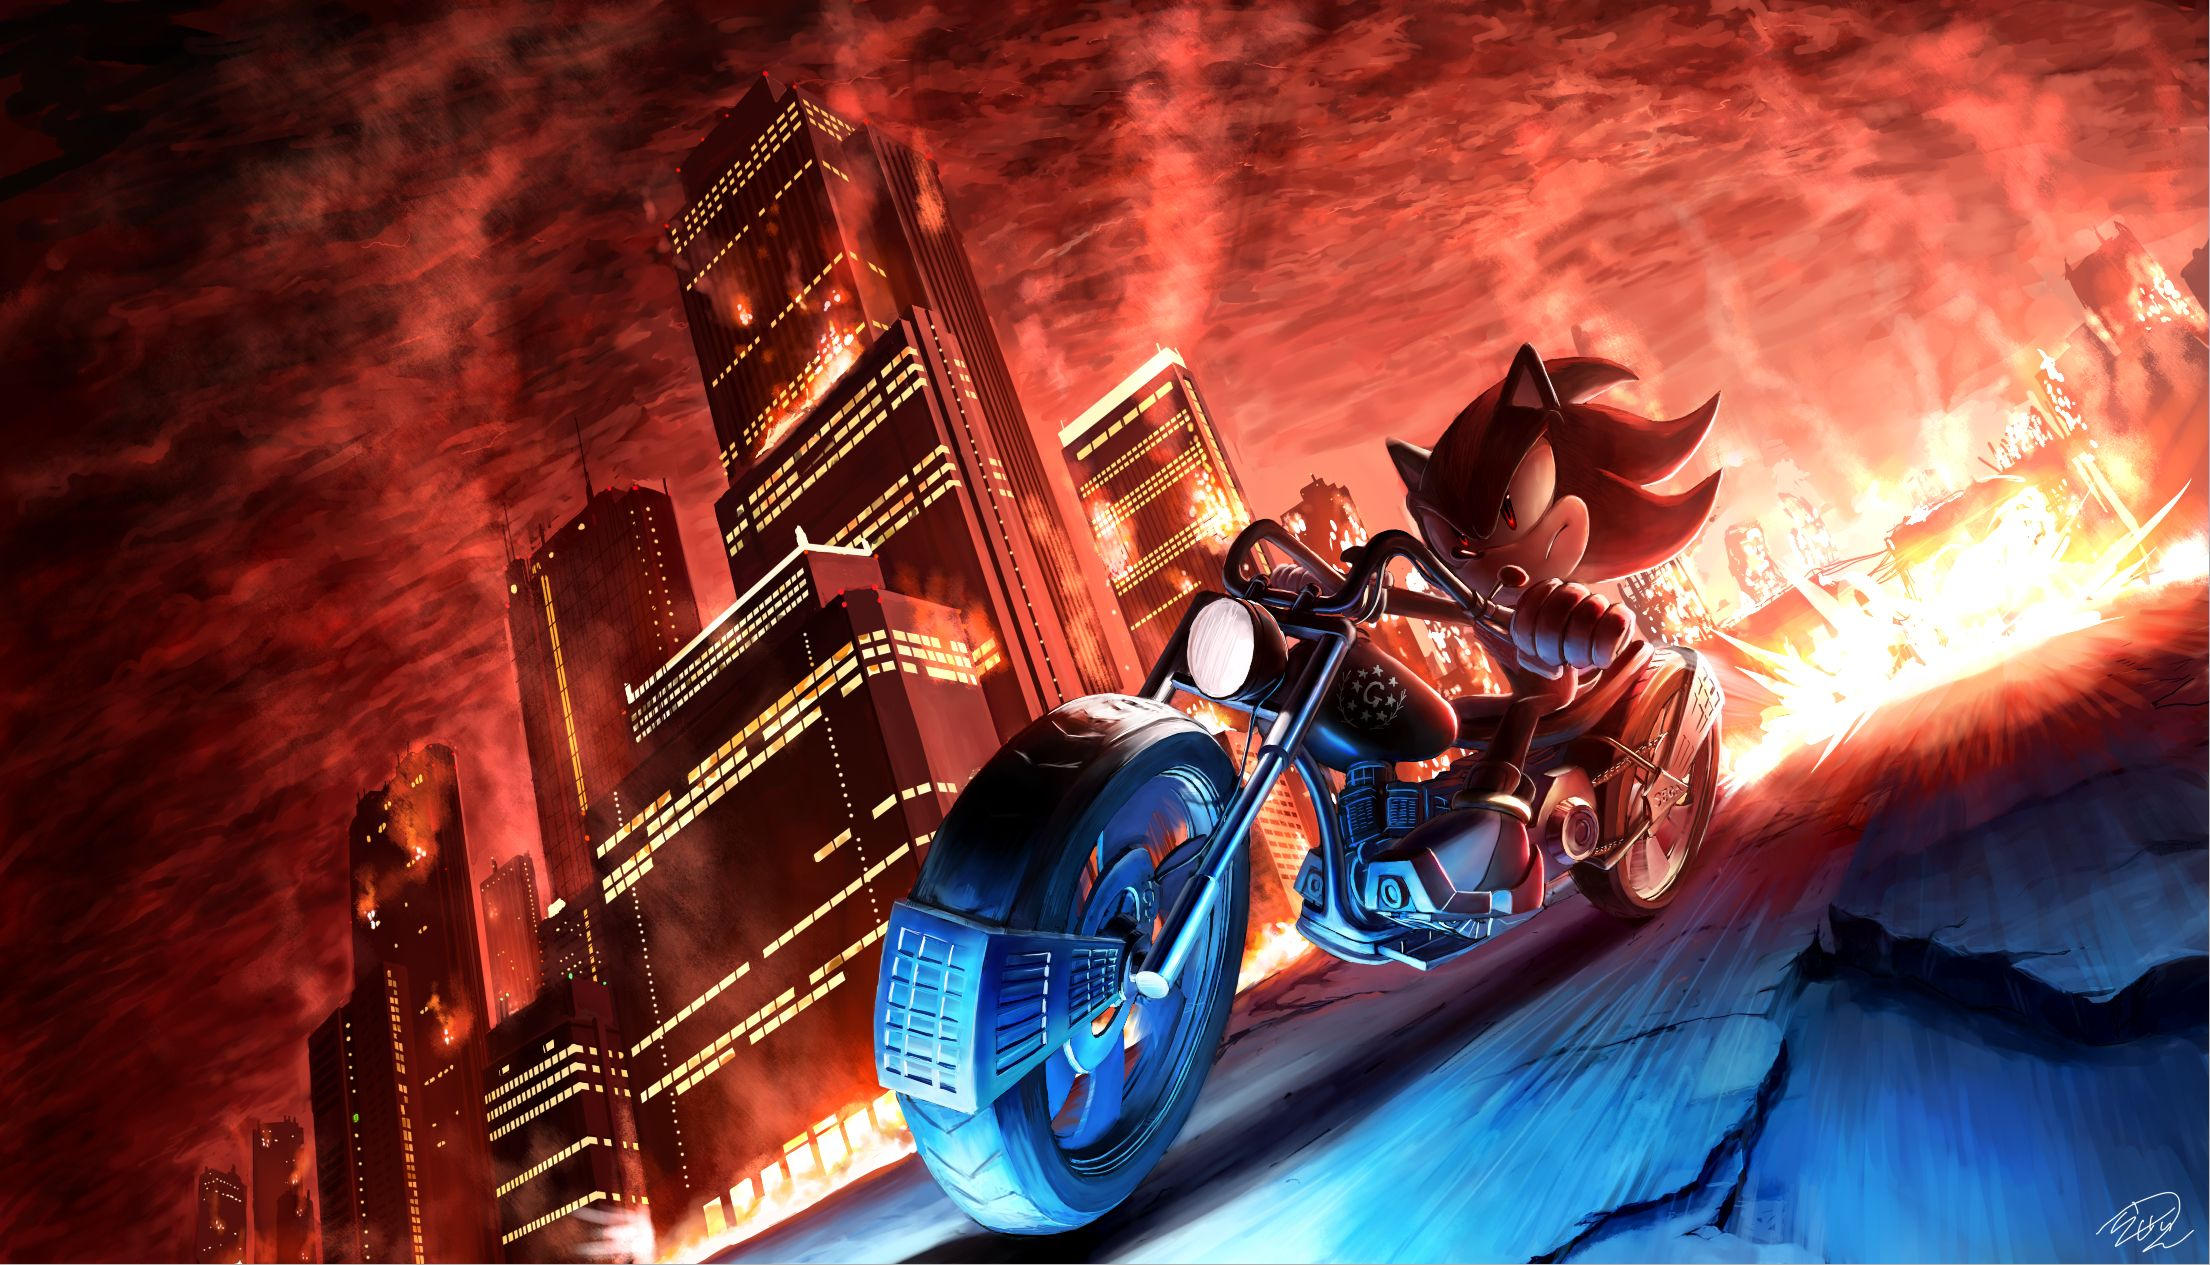 Sonic The Hedgehog City Wallpapers Top Free Sonic The Hedgehog